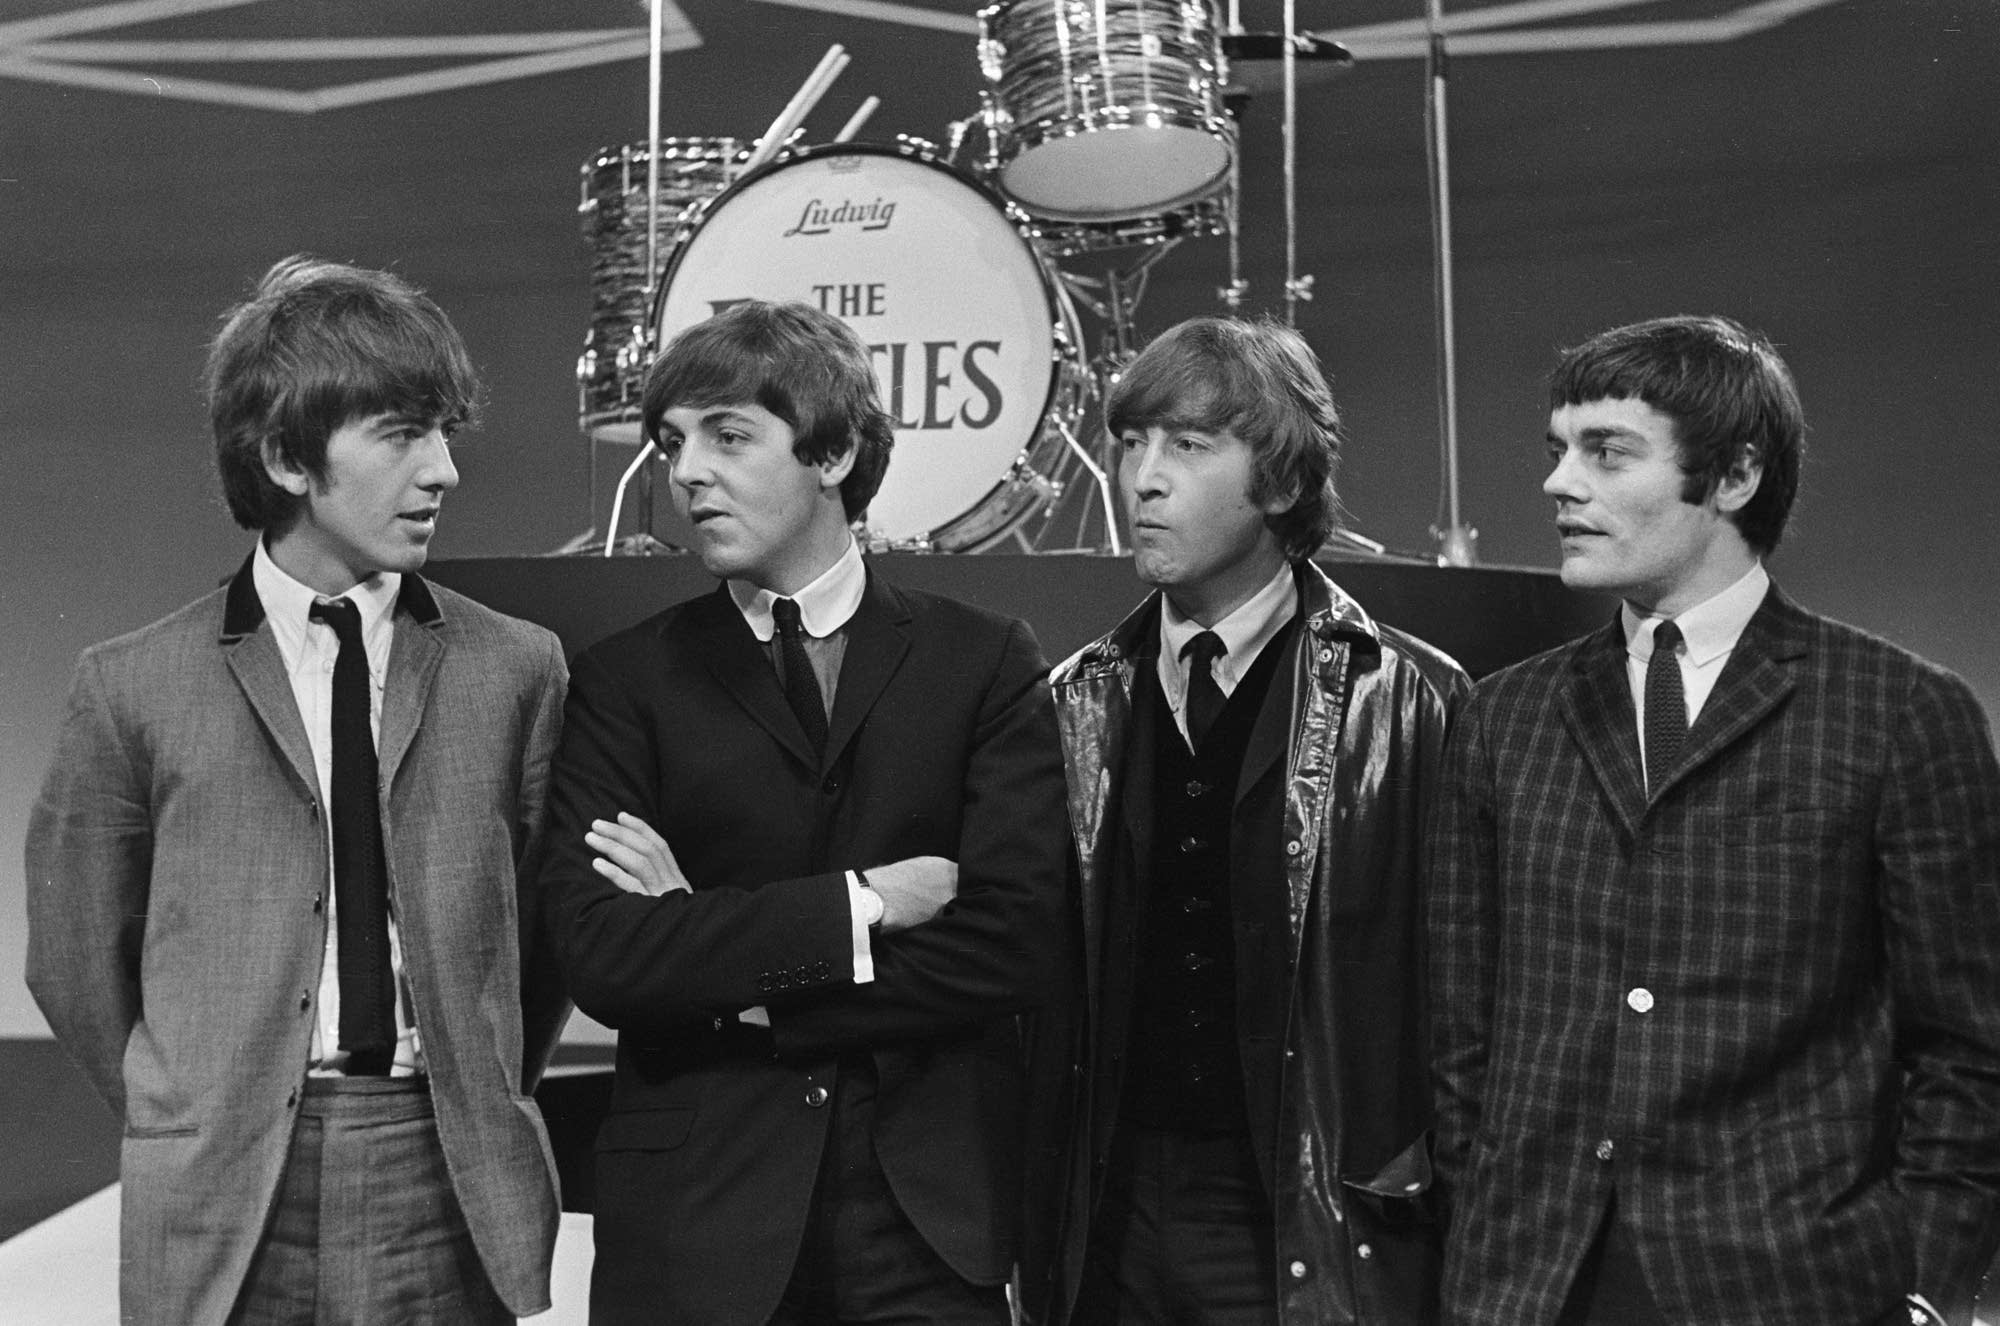 Jimmie Nicol (far right) with the Beatles in 1964